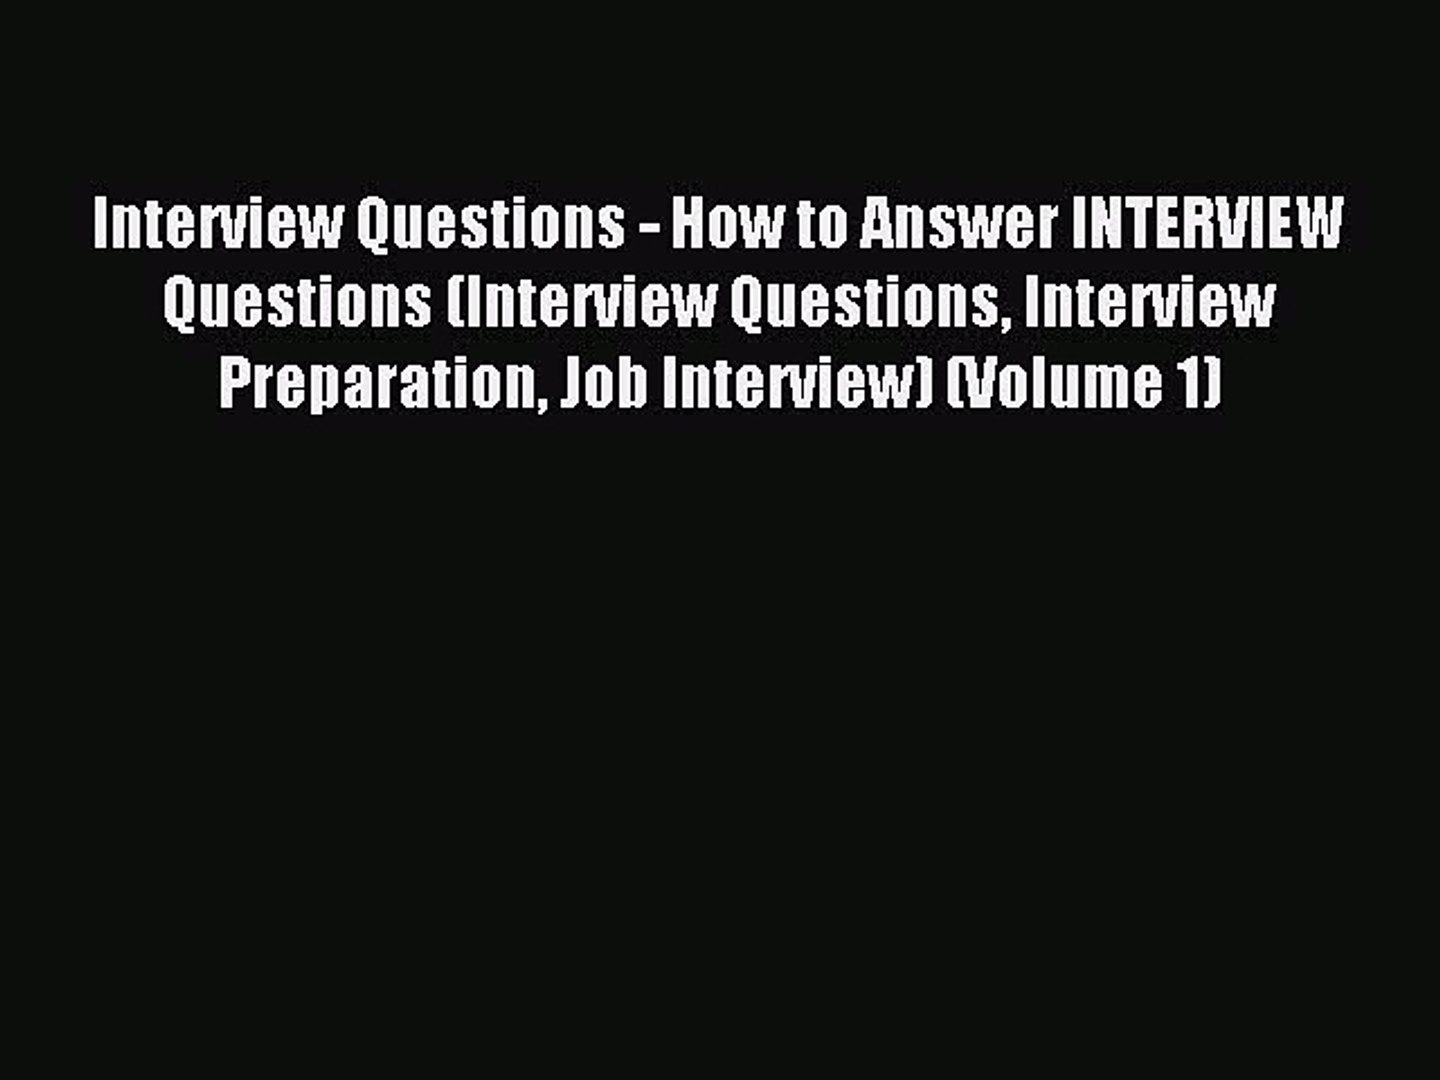 Read Interview Questions - How to Answer INTERVIEW Questions (Interview Questions Interview